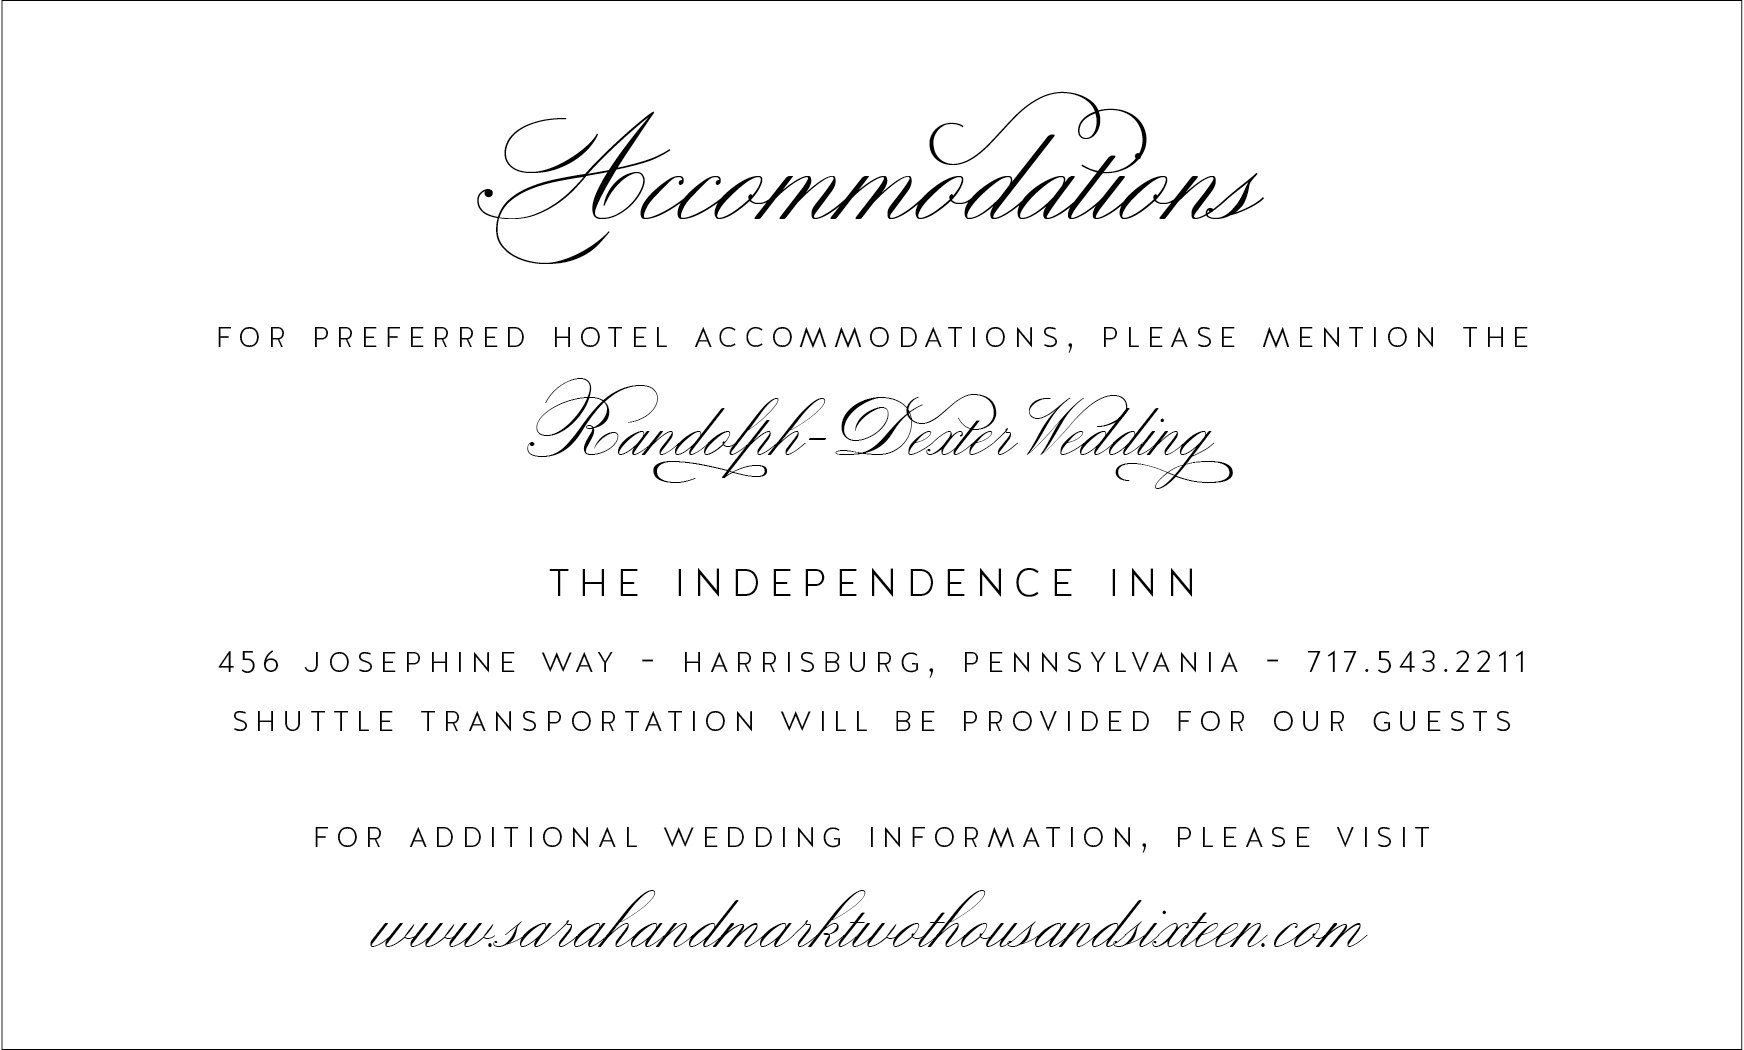 Accommodations, Travel, Directions card